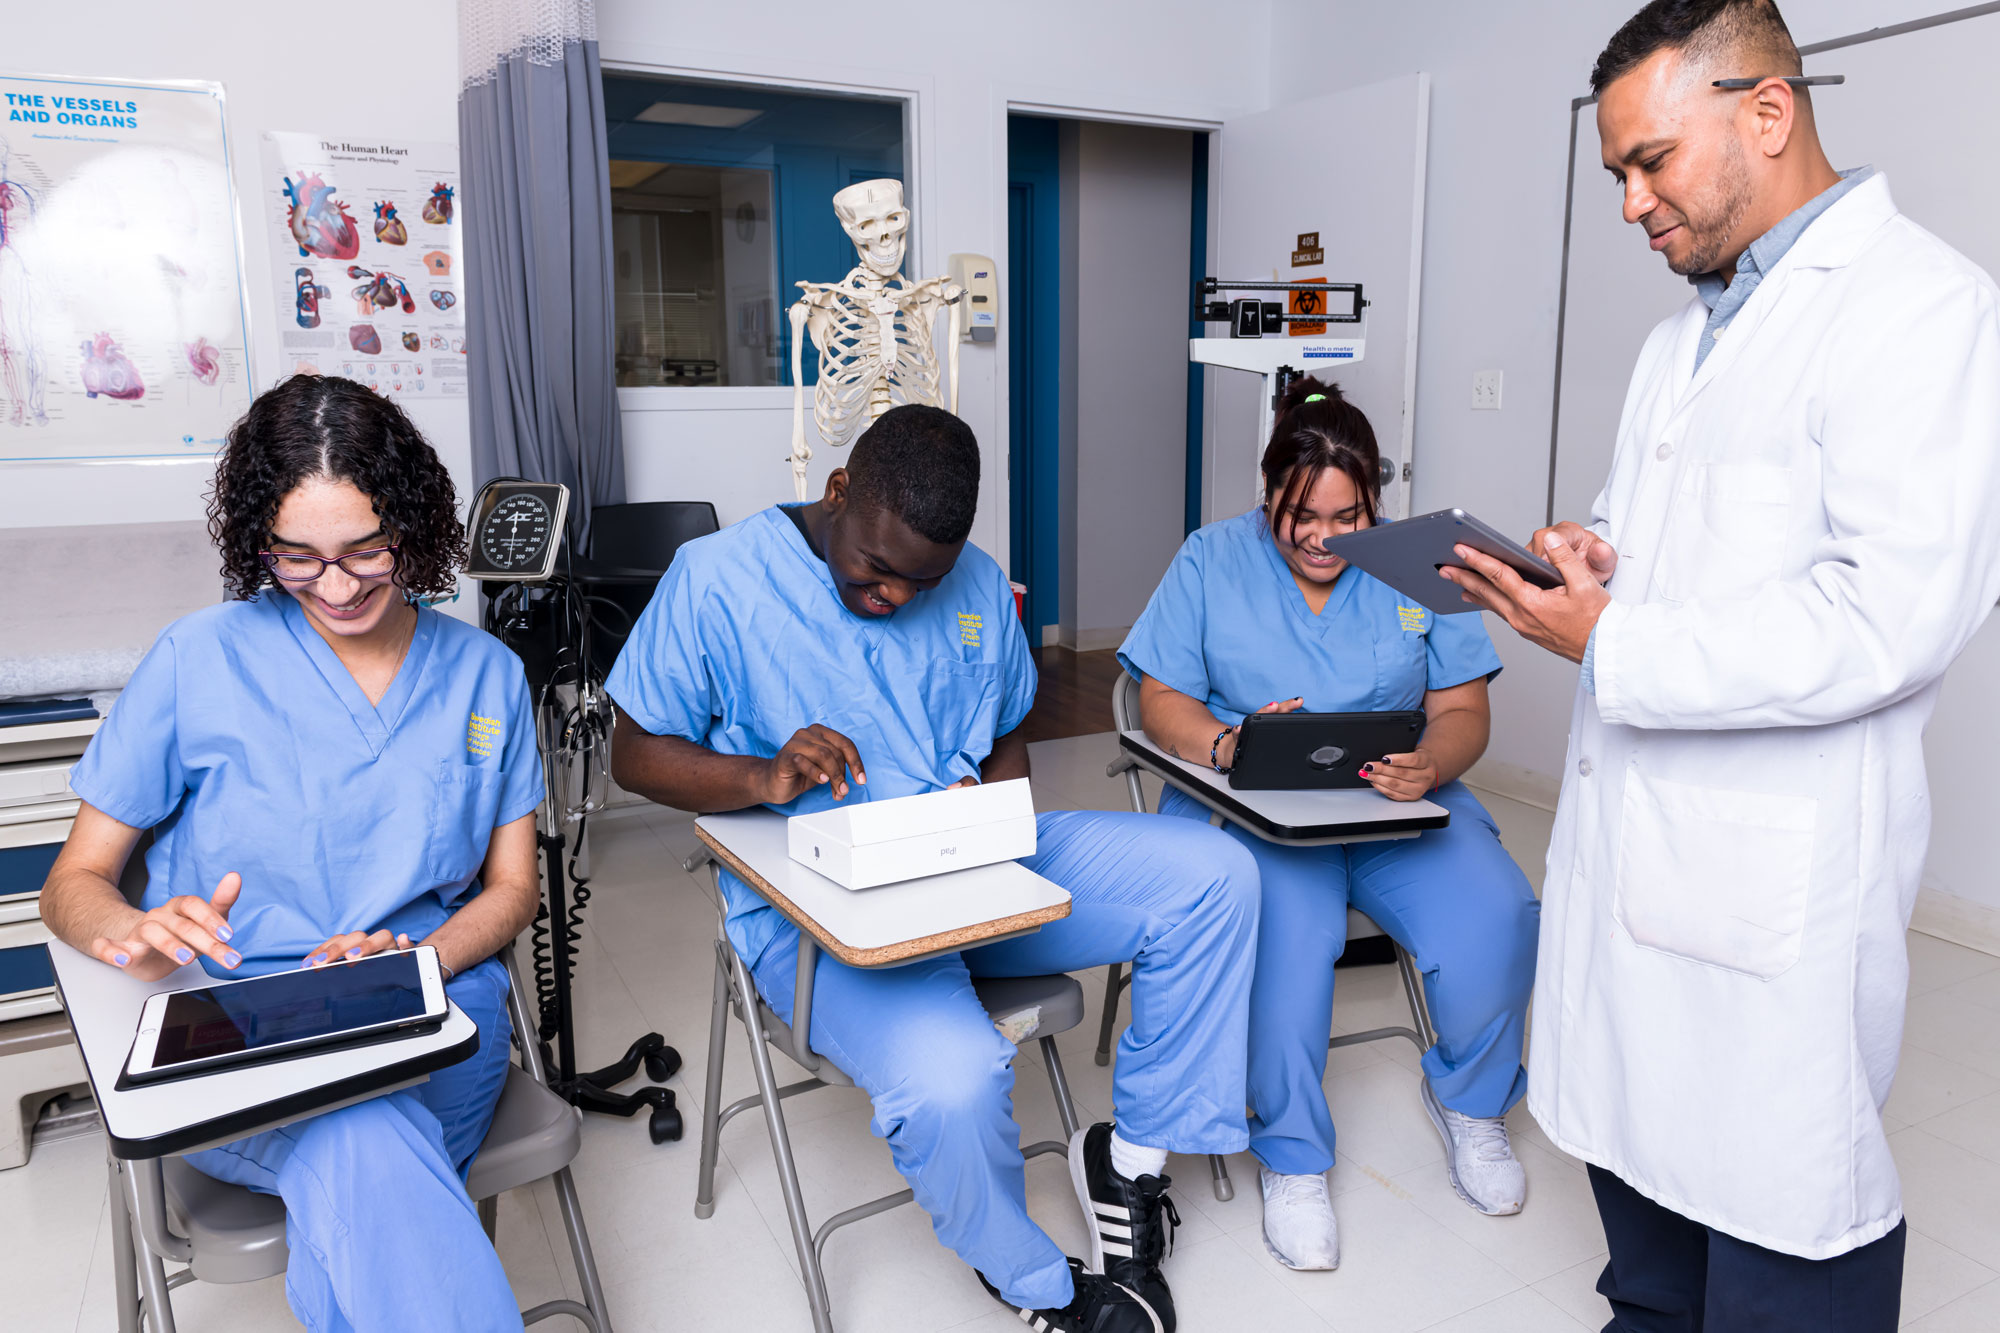 Three Medical Assistant Students - Swedish Institute - New York, NY